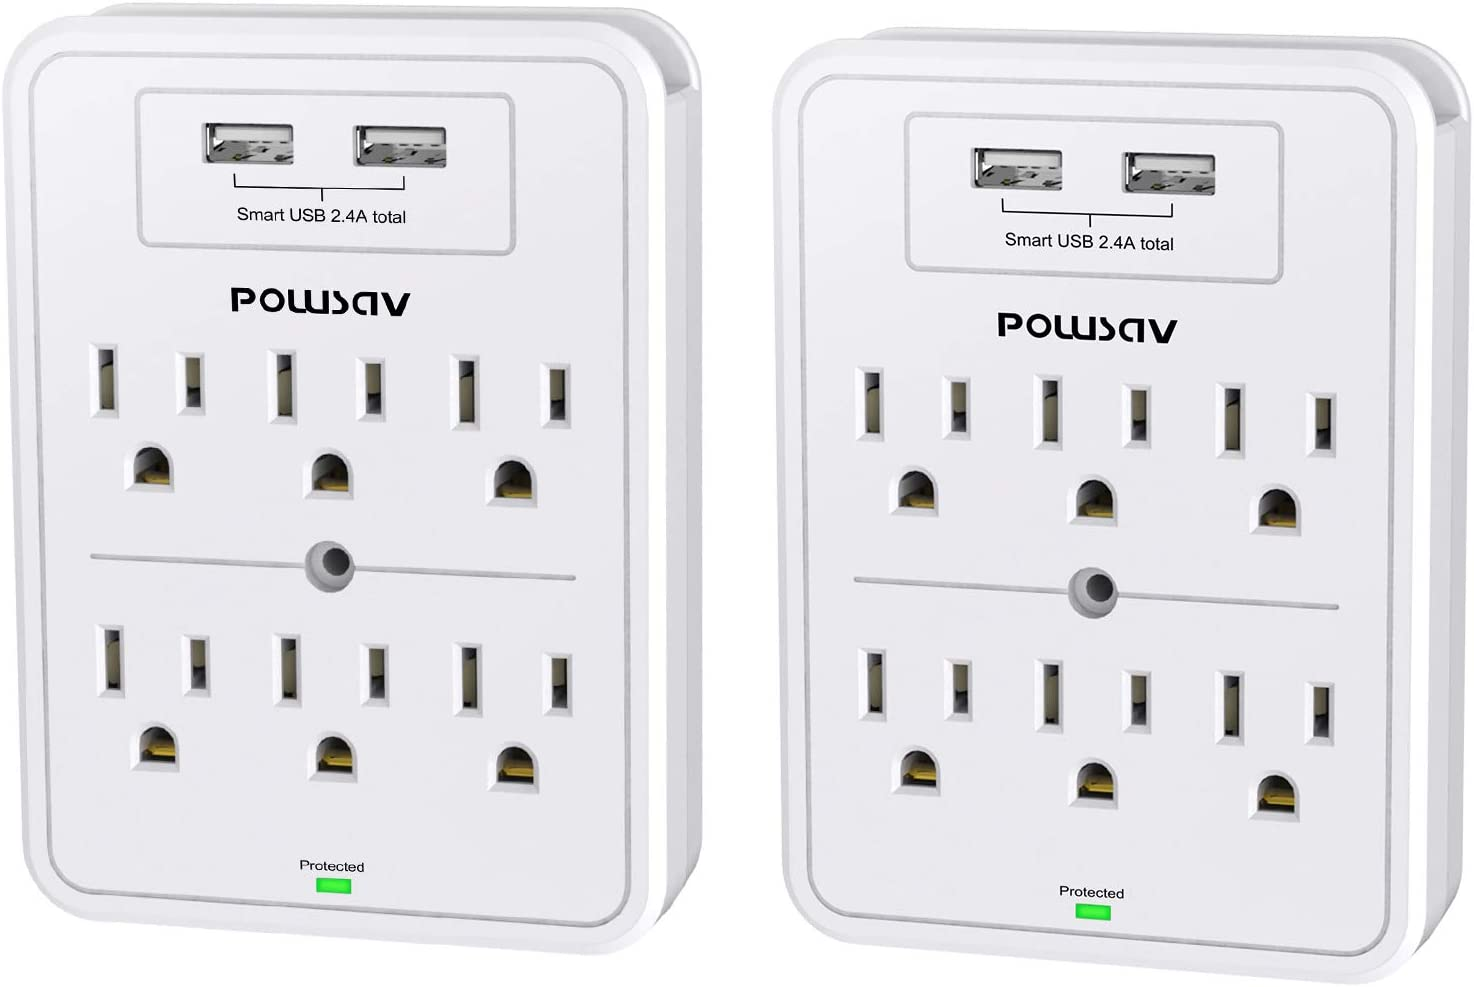 Multi Plug Outlet, Surge Protector, POWSAV USB Wall Charger with 2 USB Ports, 6-Outlet Extender and Top Phone Holder for Your Cell Phone, White, ETL Listed,2 Pack